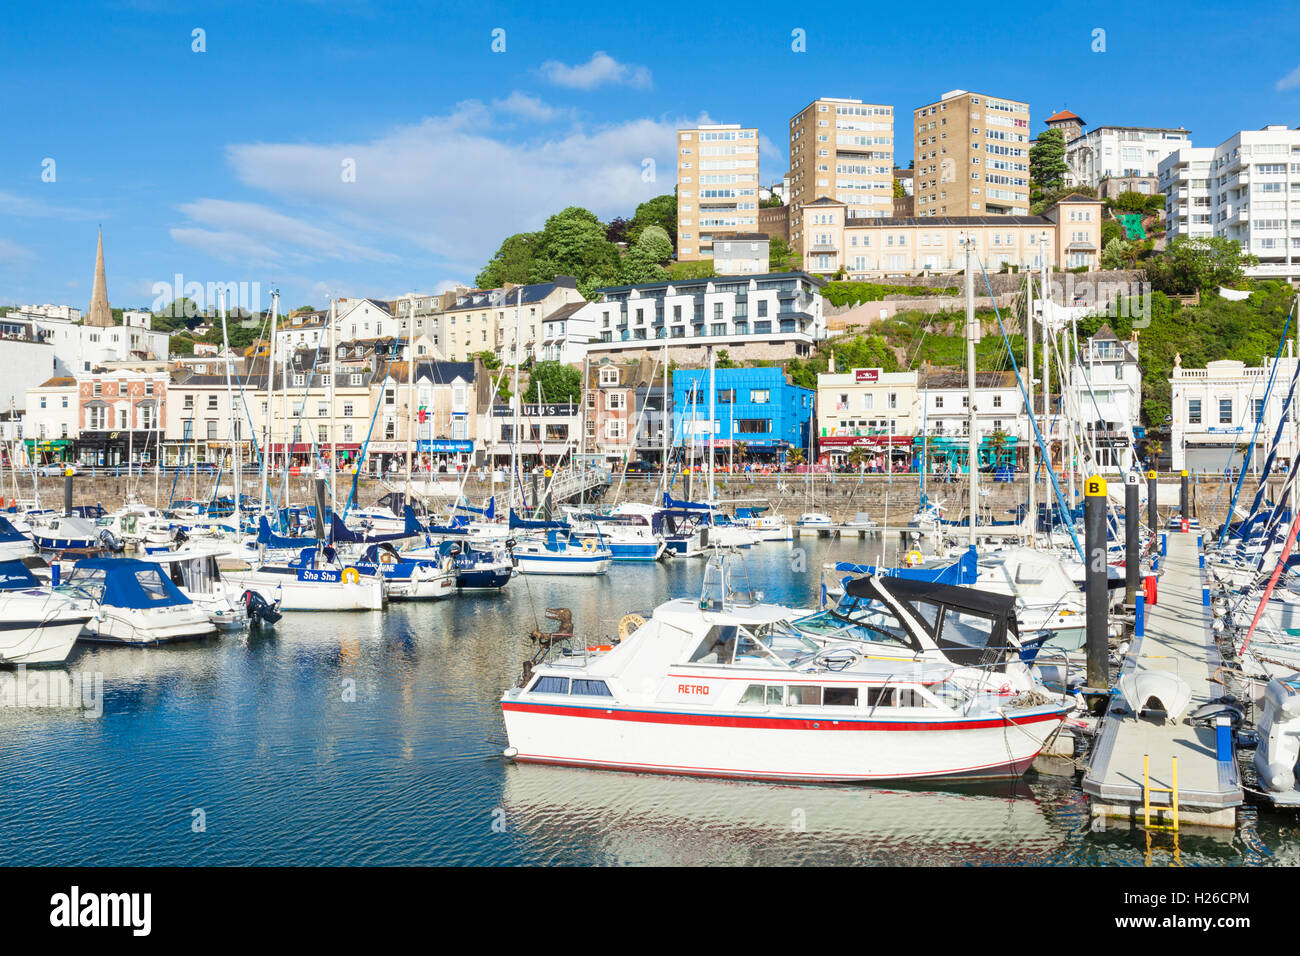 Torquay Marina and harbour Torquay Devon England UK GB Europe EU - Stock Image